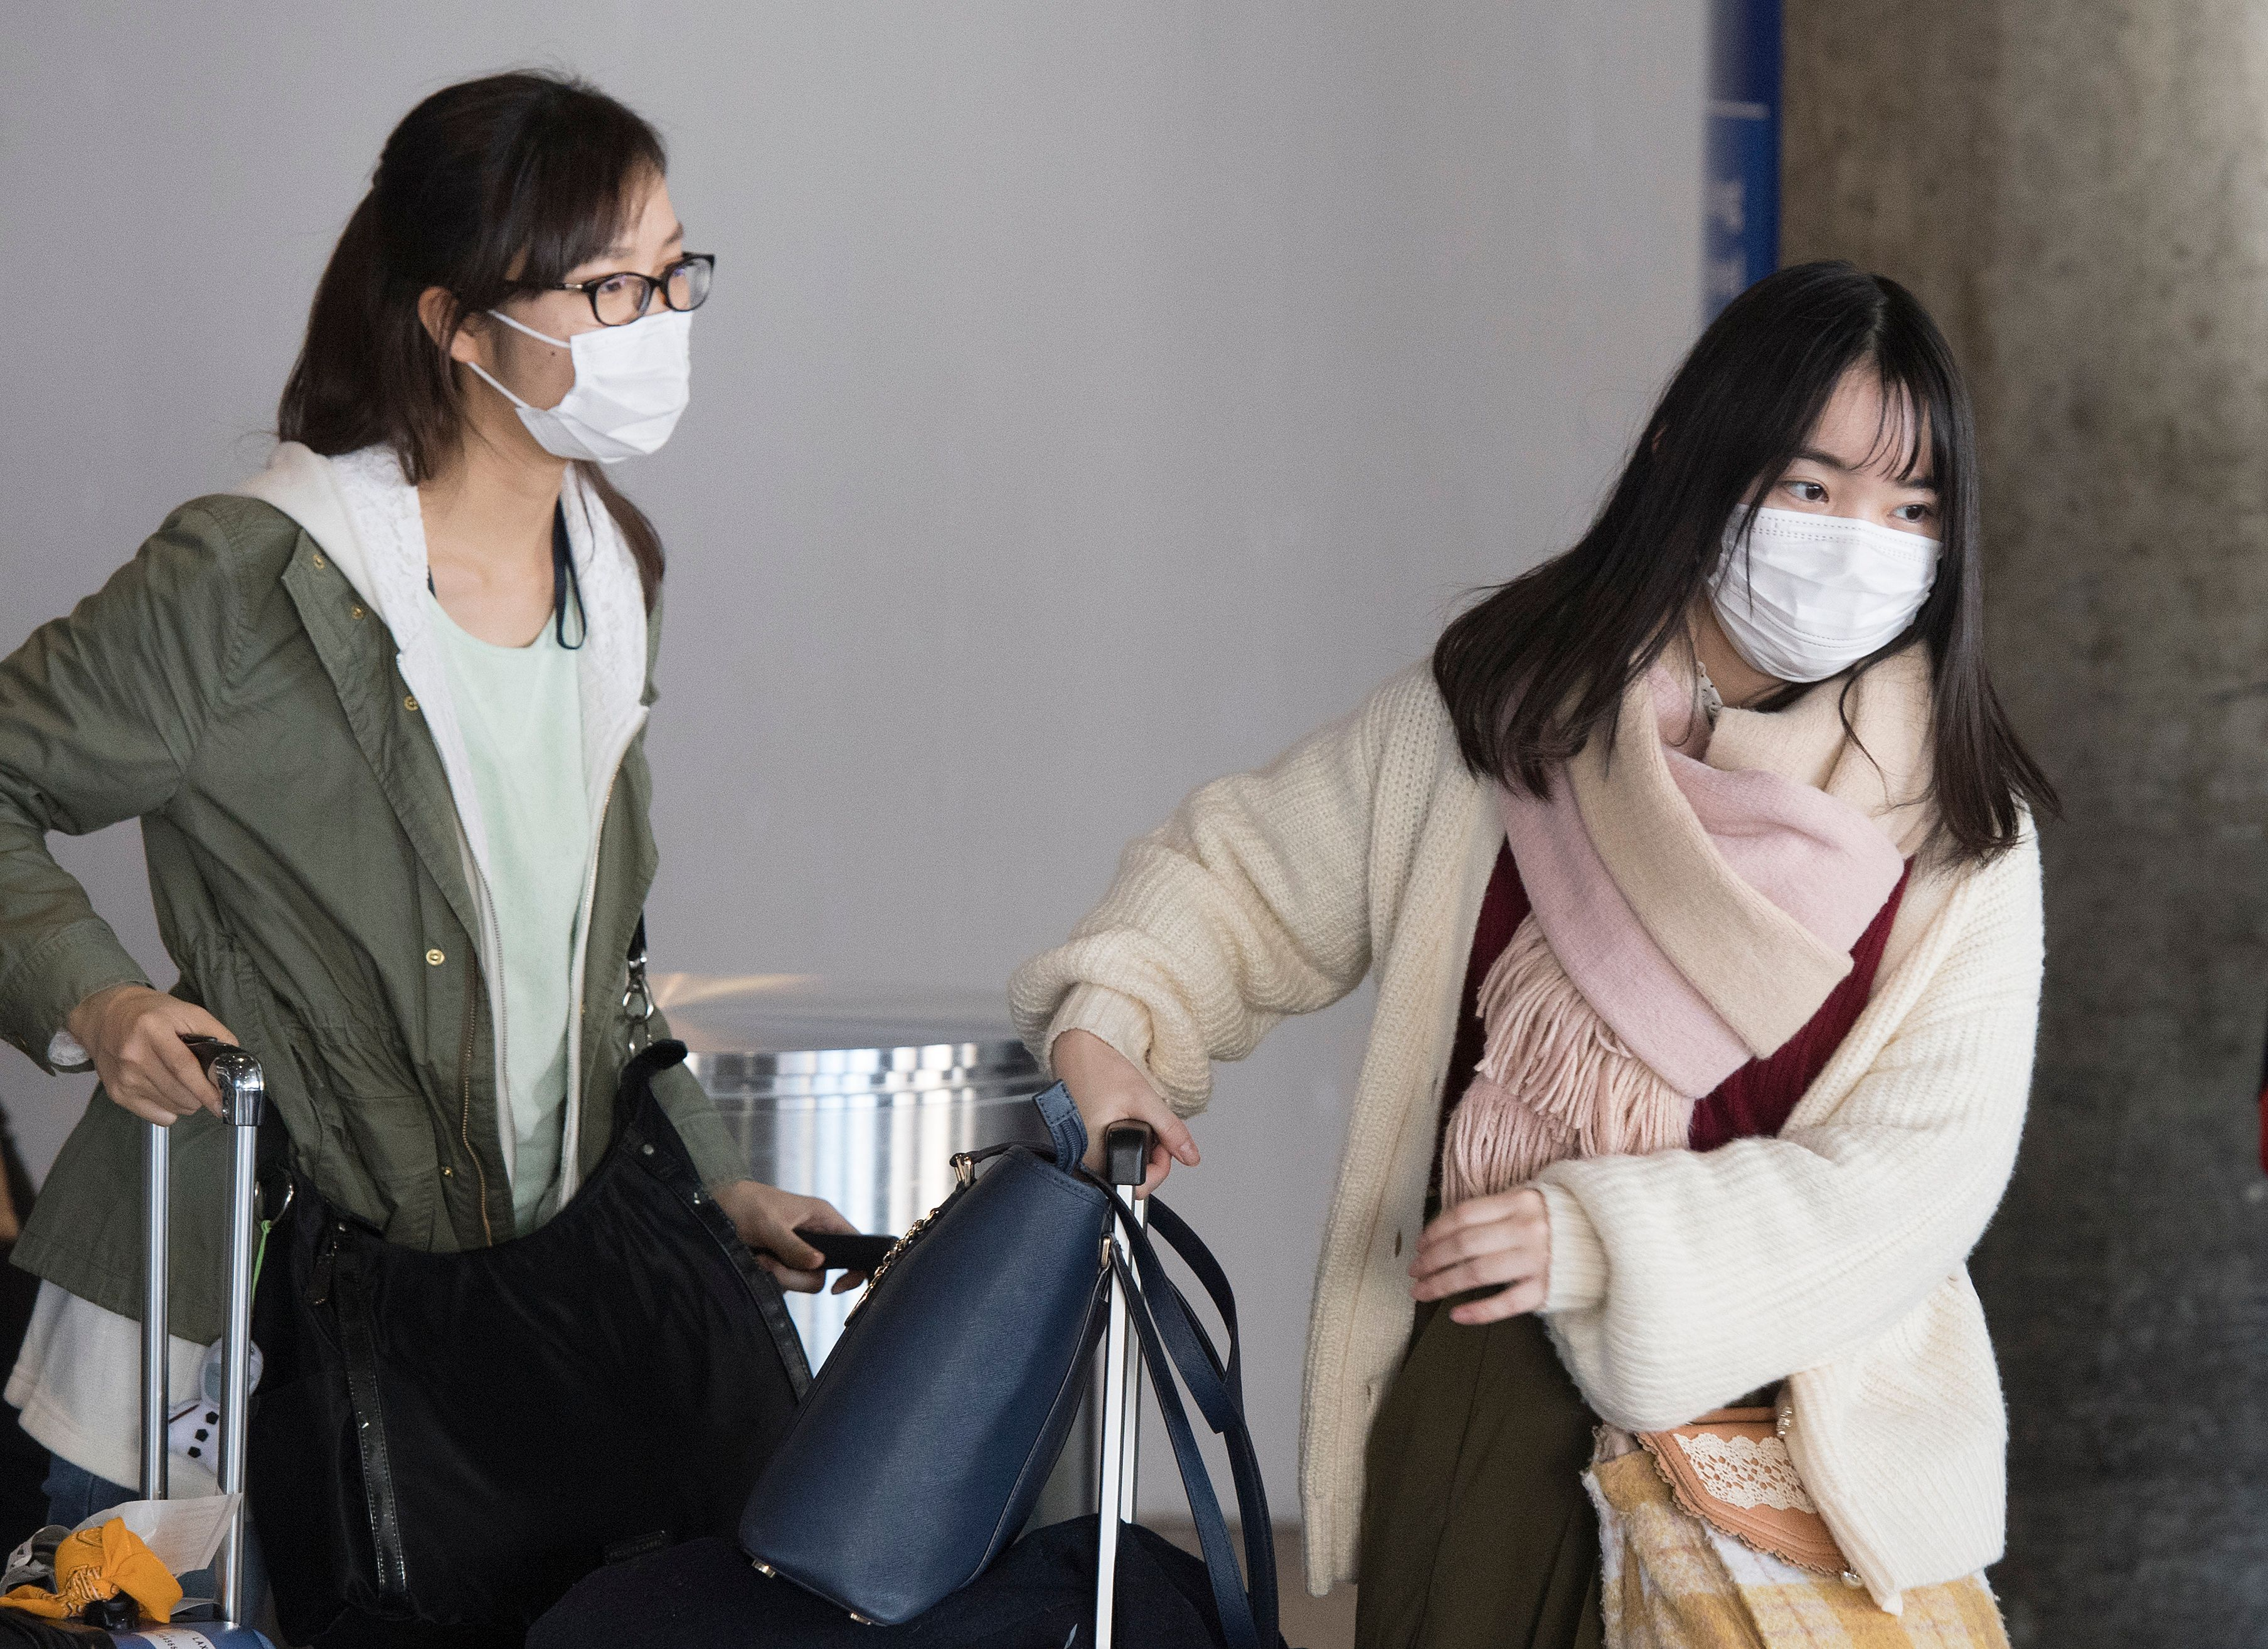 Passengers wear face masks to protect against the spread of the Coronavirus